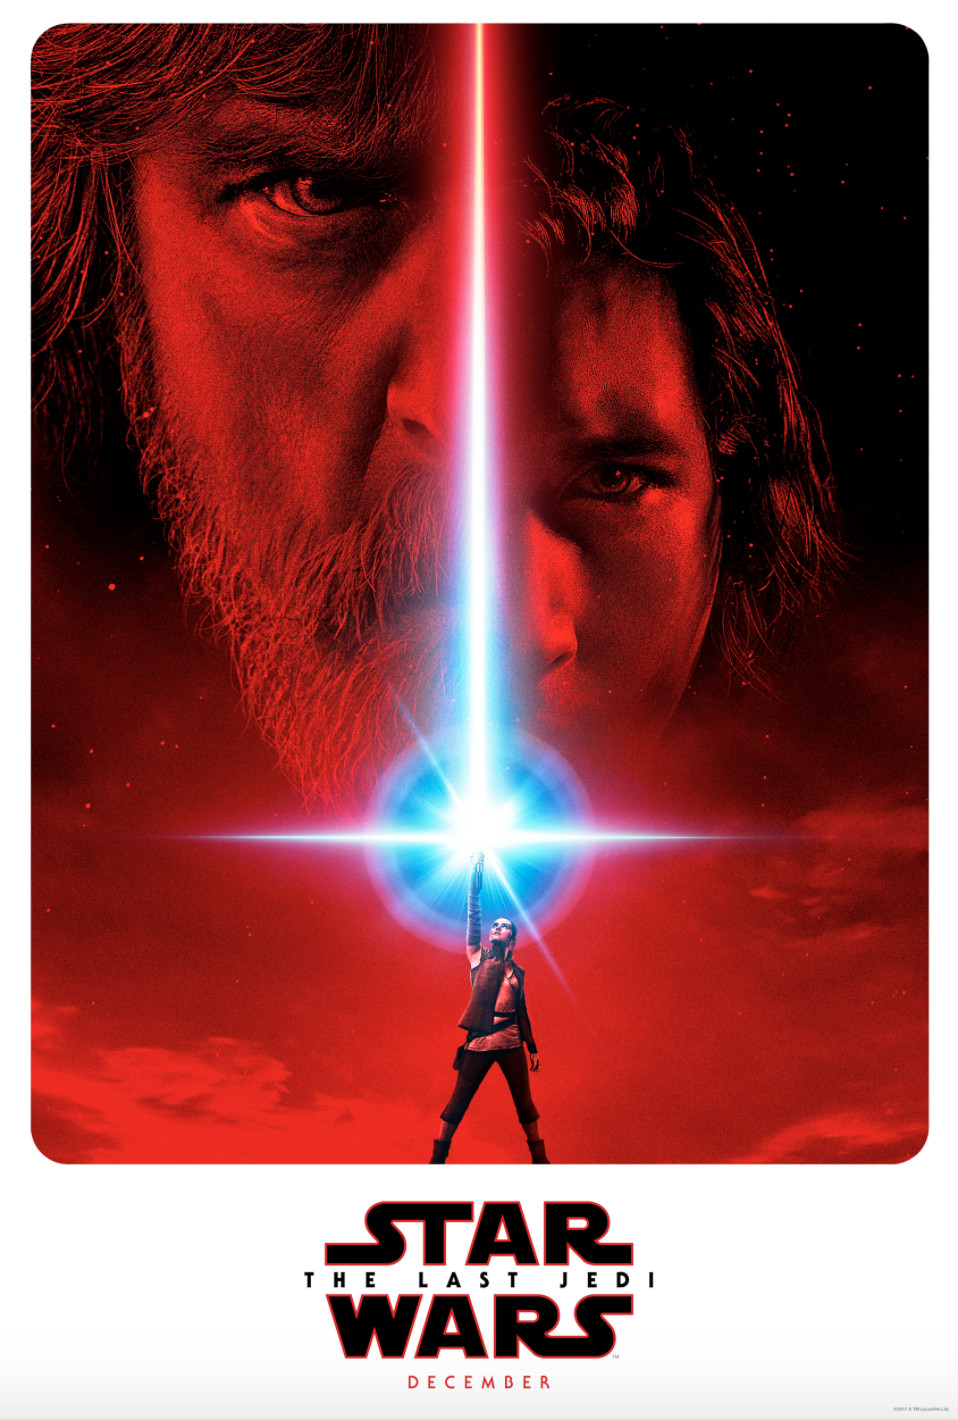 Movie poster for 'Star Wars: The Last Jedi'